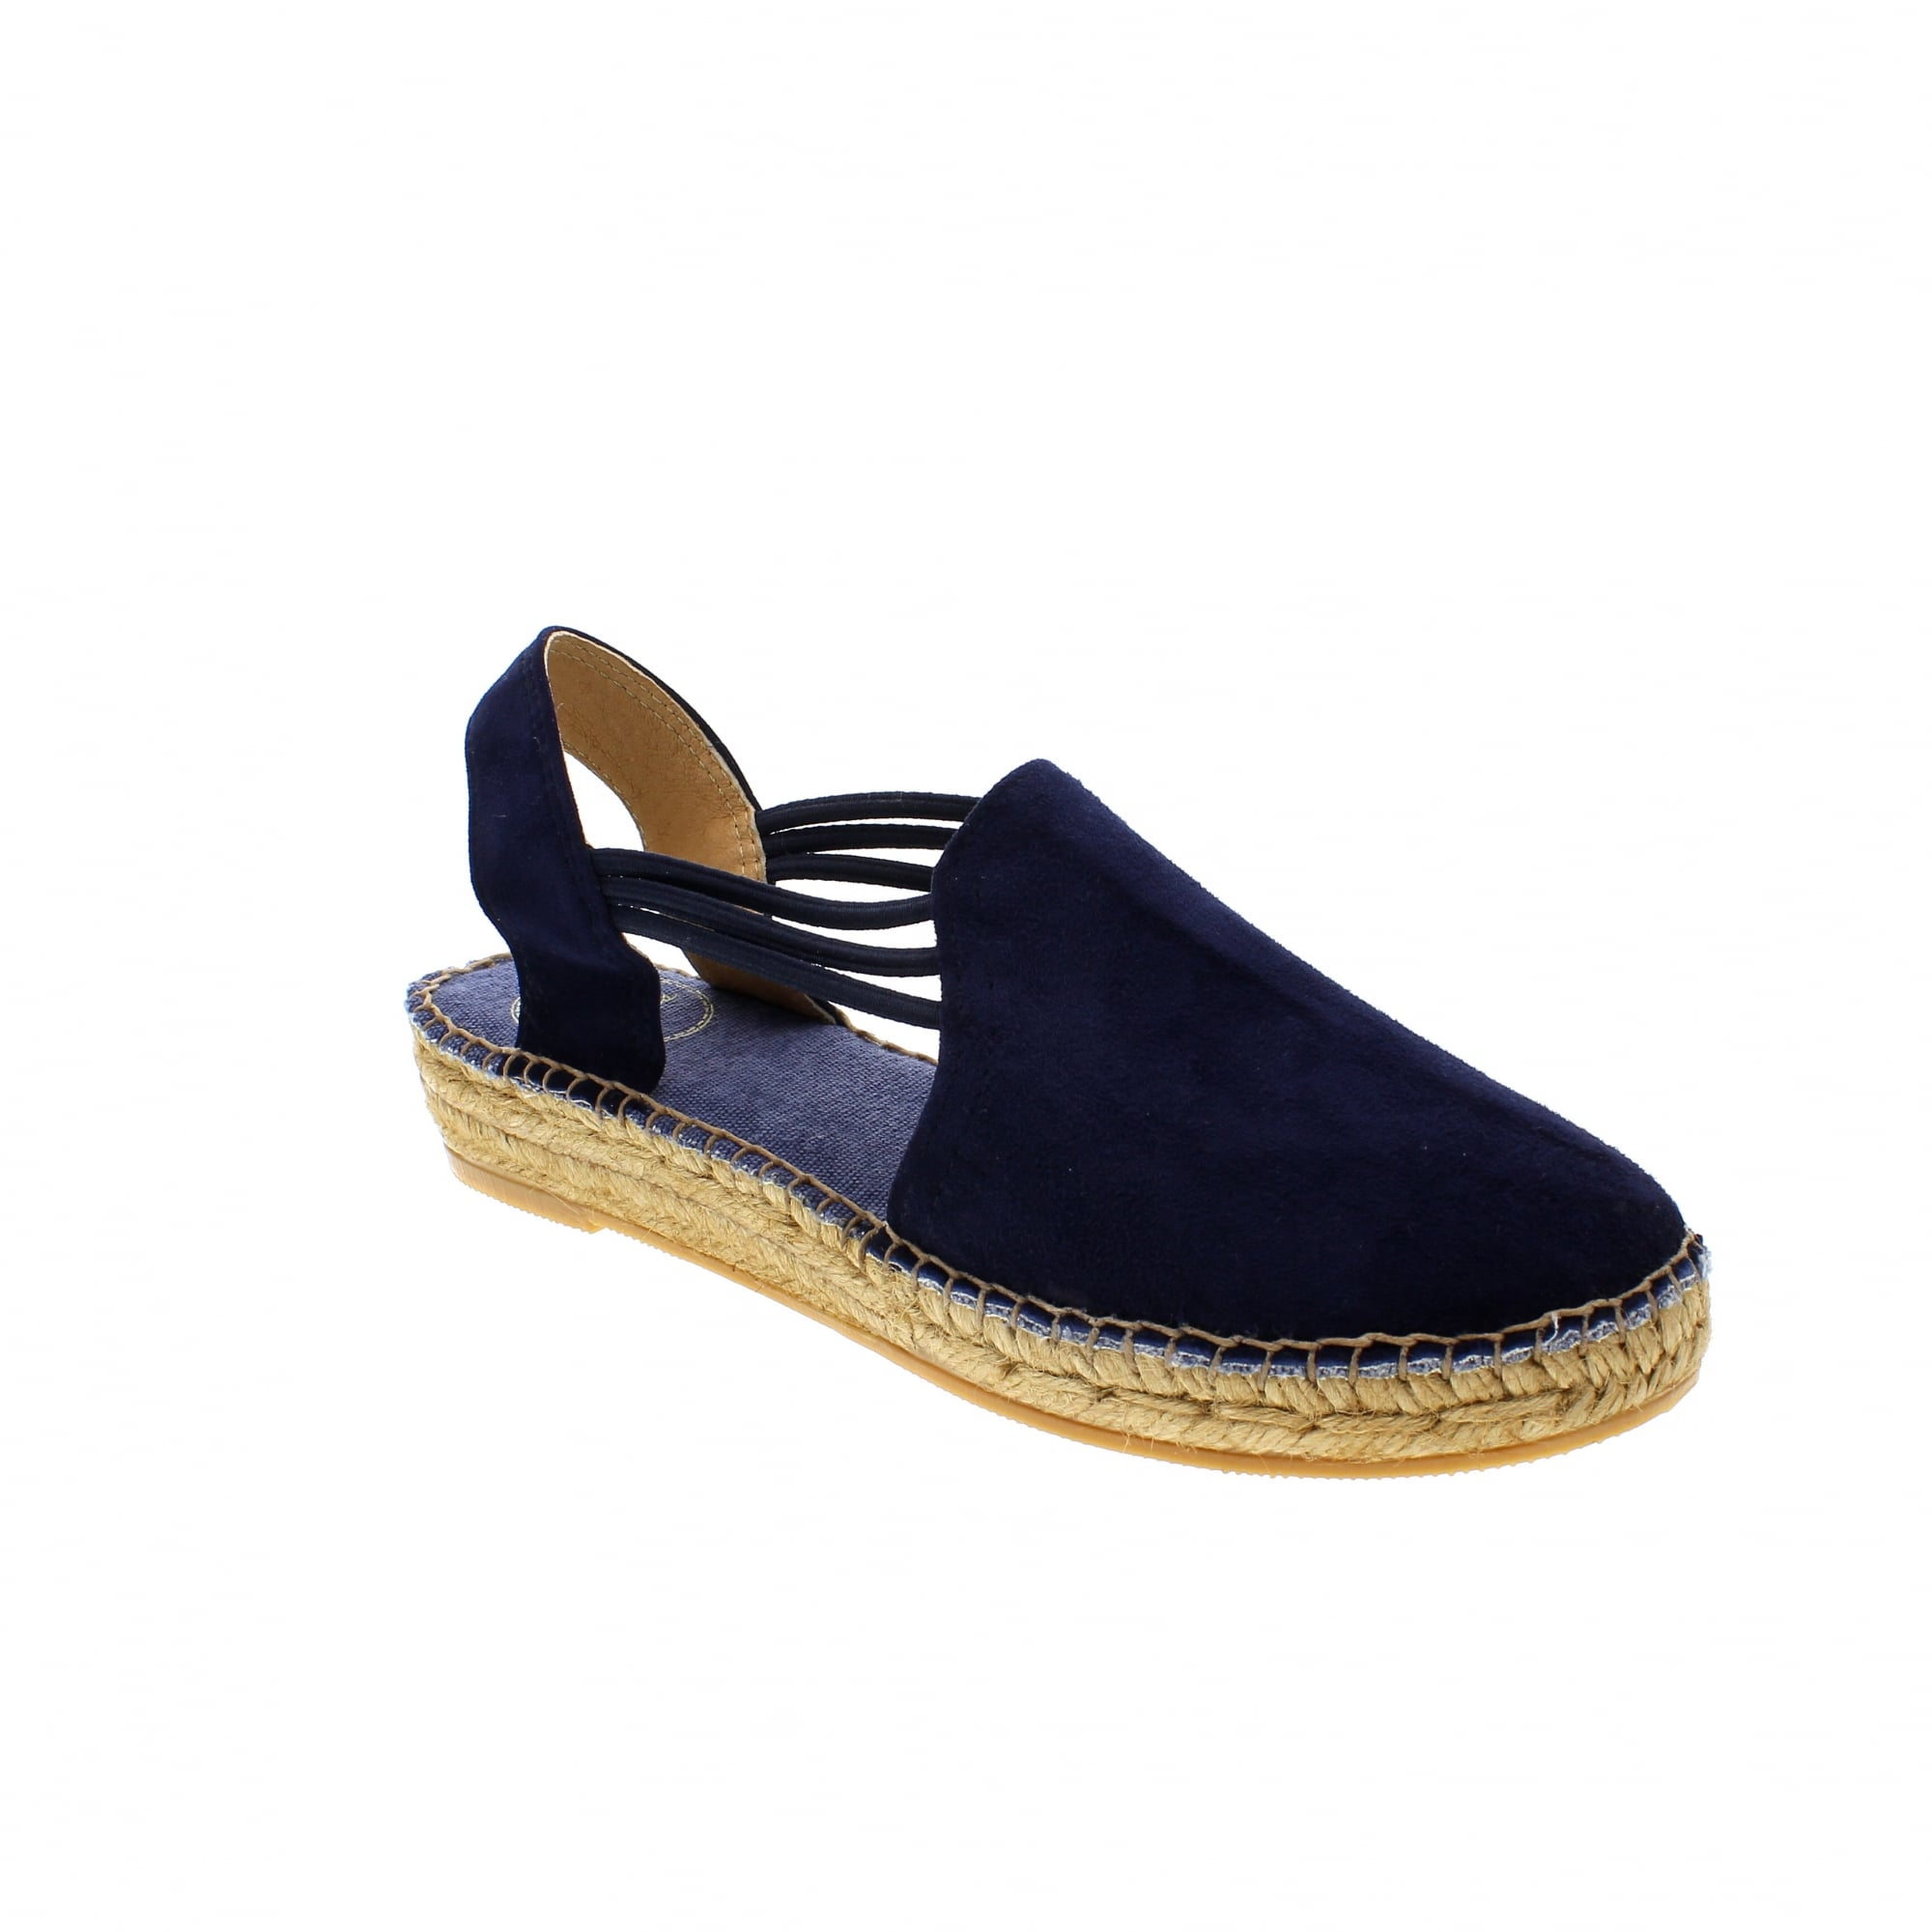 Toni Pons Nuria-v21 - Womens from